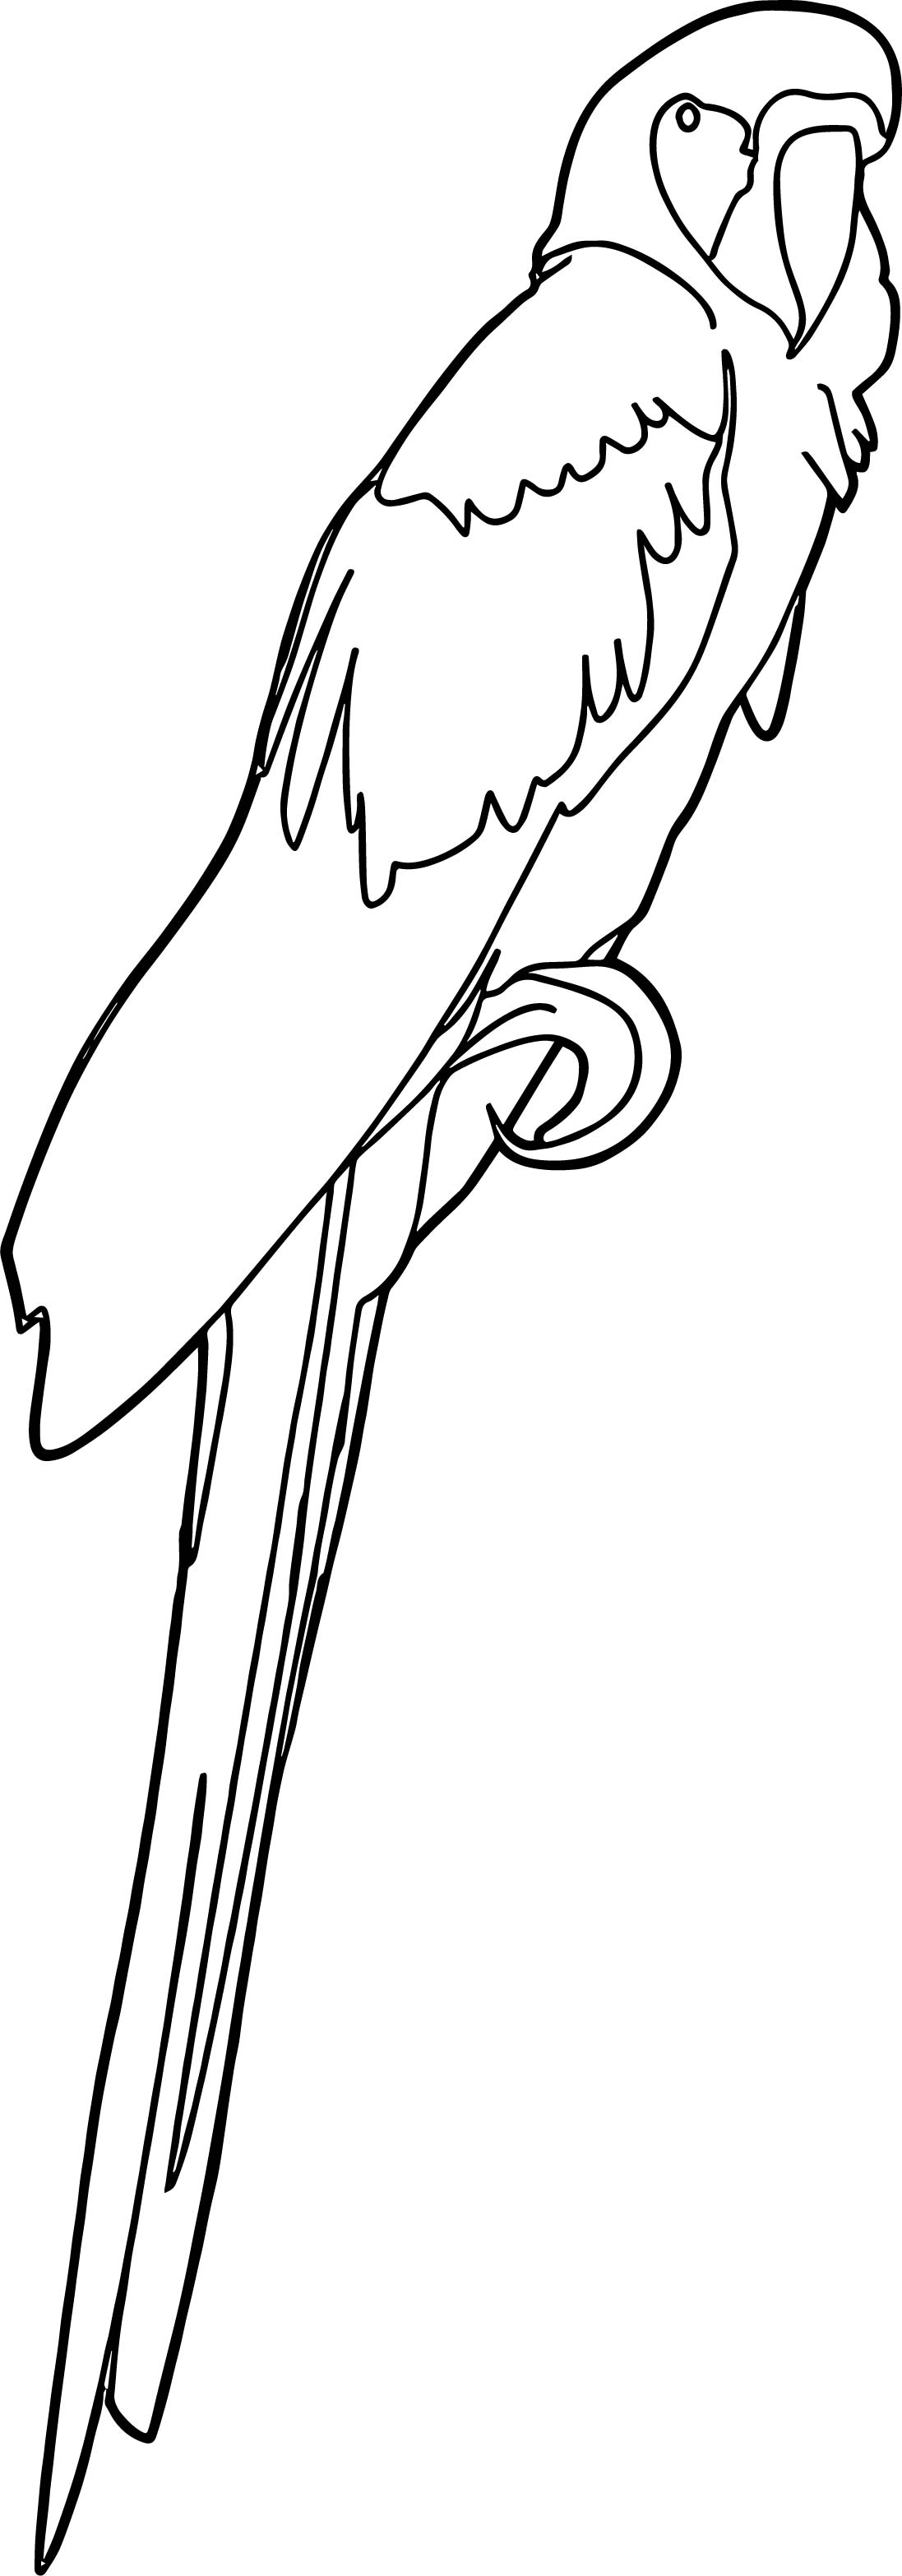 Parrot Coloring Page 030